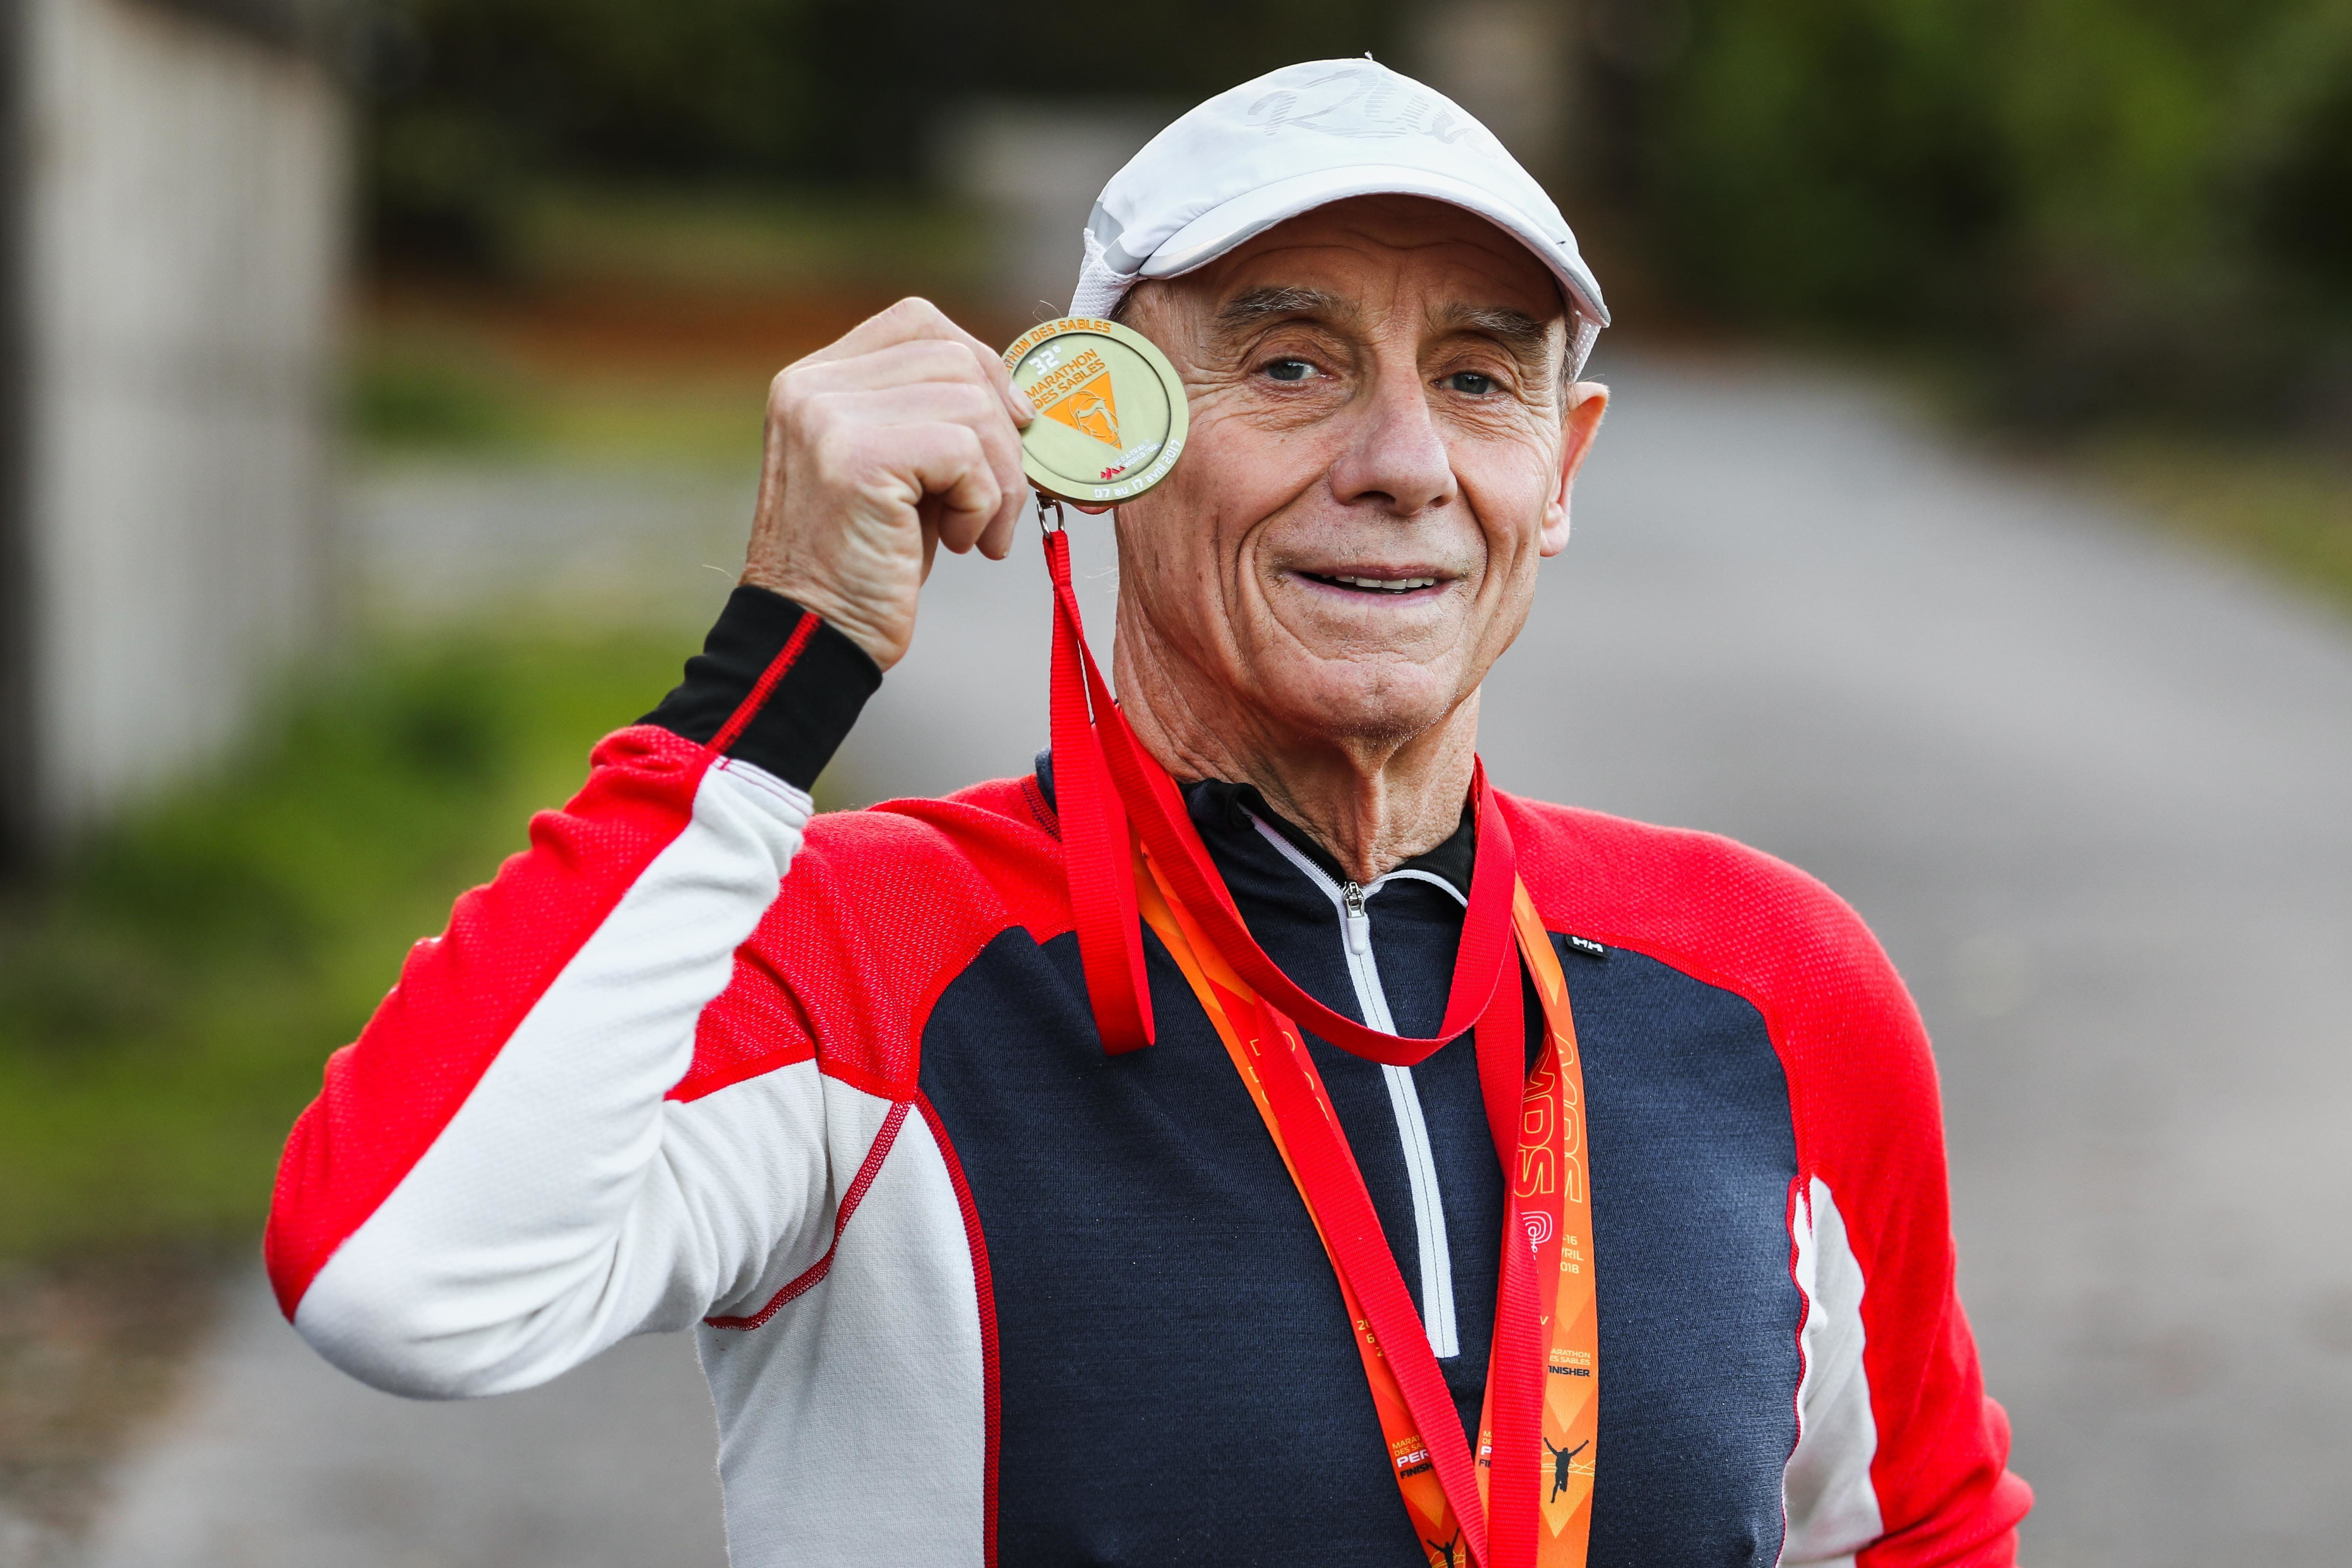 Grandad Who's Run 23 Ultra-Marathons Says Secret Is A Daily Cup Of Hot Chocolate And Wine